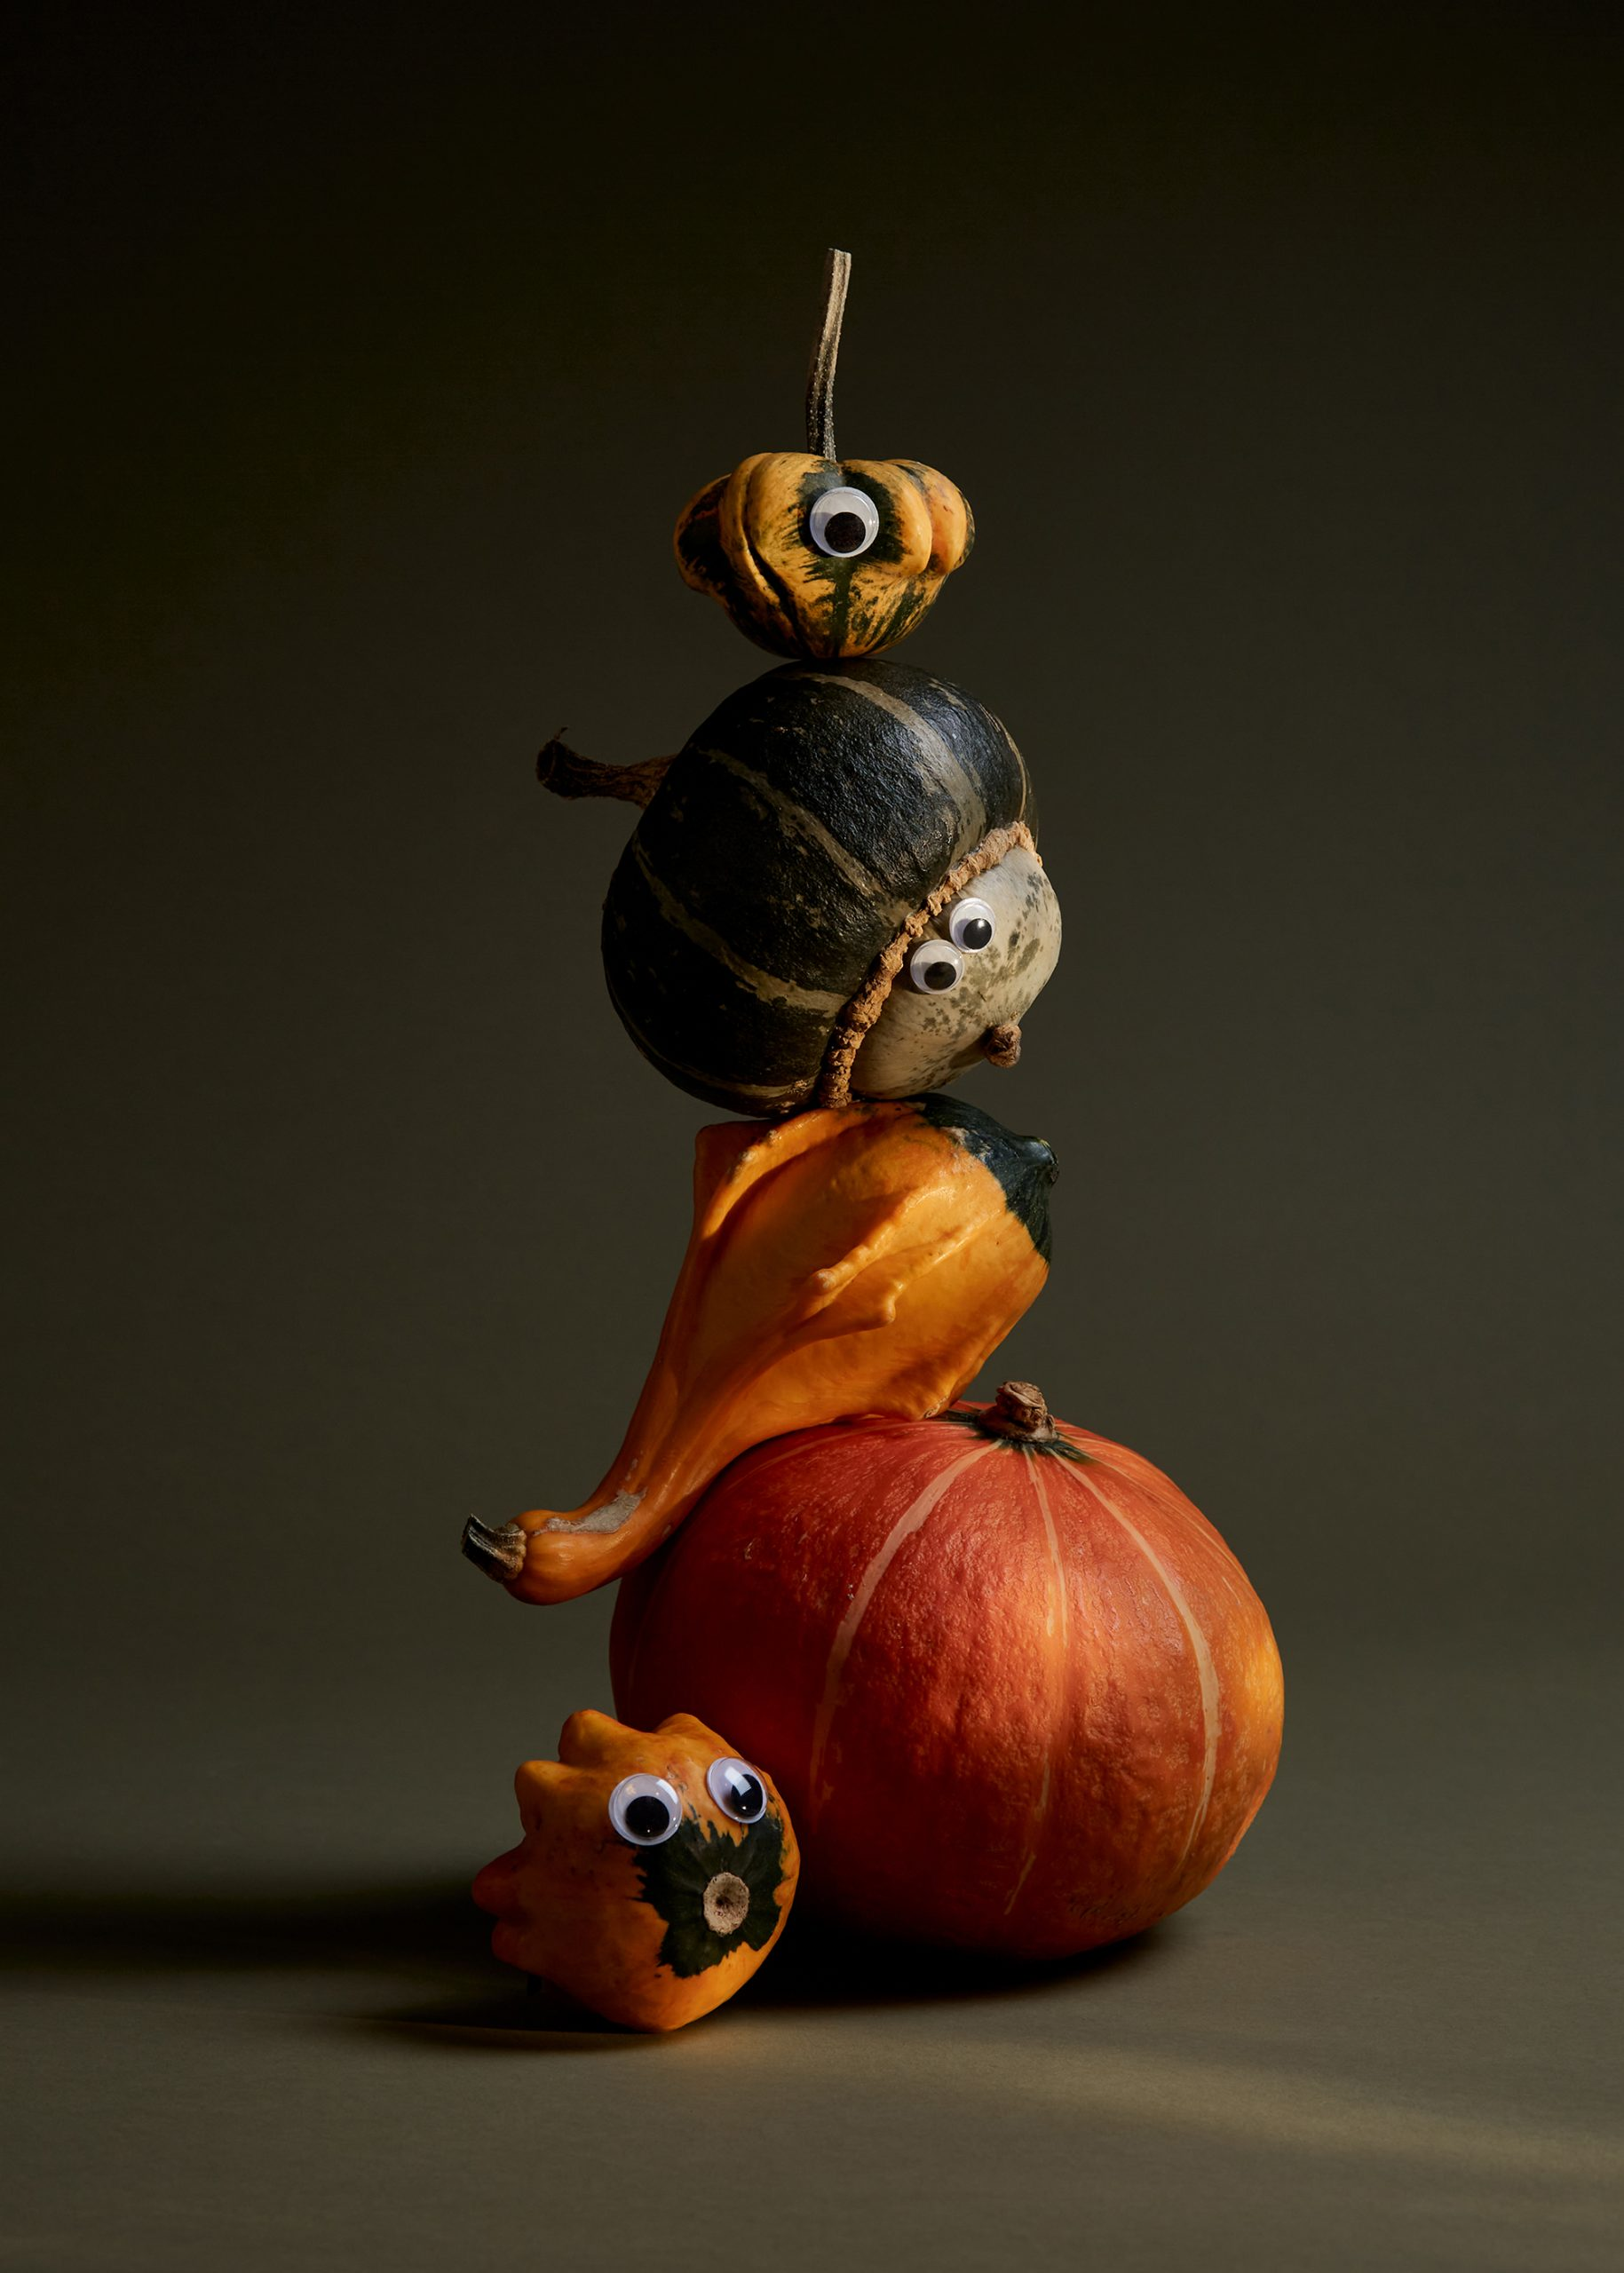 Rikki_Ward_Photographer_GOURDS_3